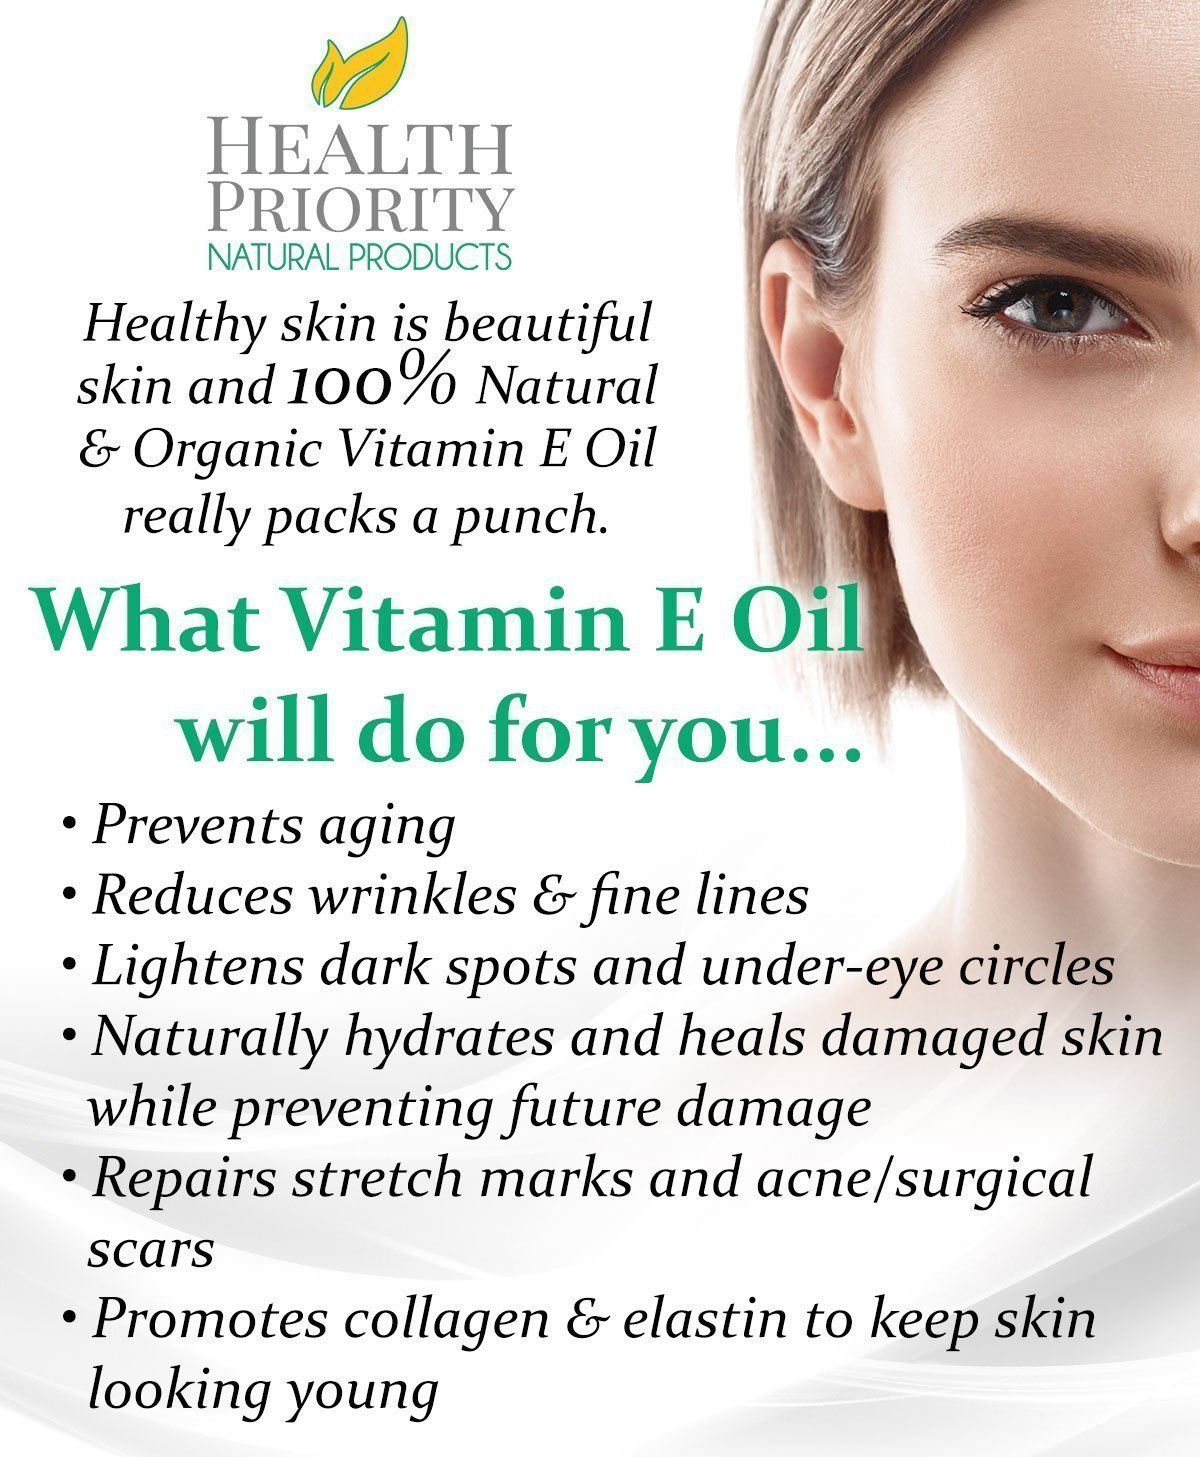 100% All Natural & Organic Vitamin E Oil For Your Face & Skin - 15,000/30,000 IU - Reduces Wrinkles, Lightens Dark Spots, Heals Stretch Marks & Surgical Scars. Best Treatment for Hair, Nails, Lips by Health Priority Natural Products (Image #4)